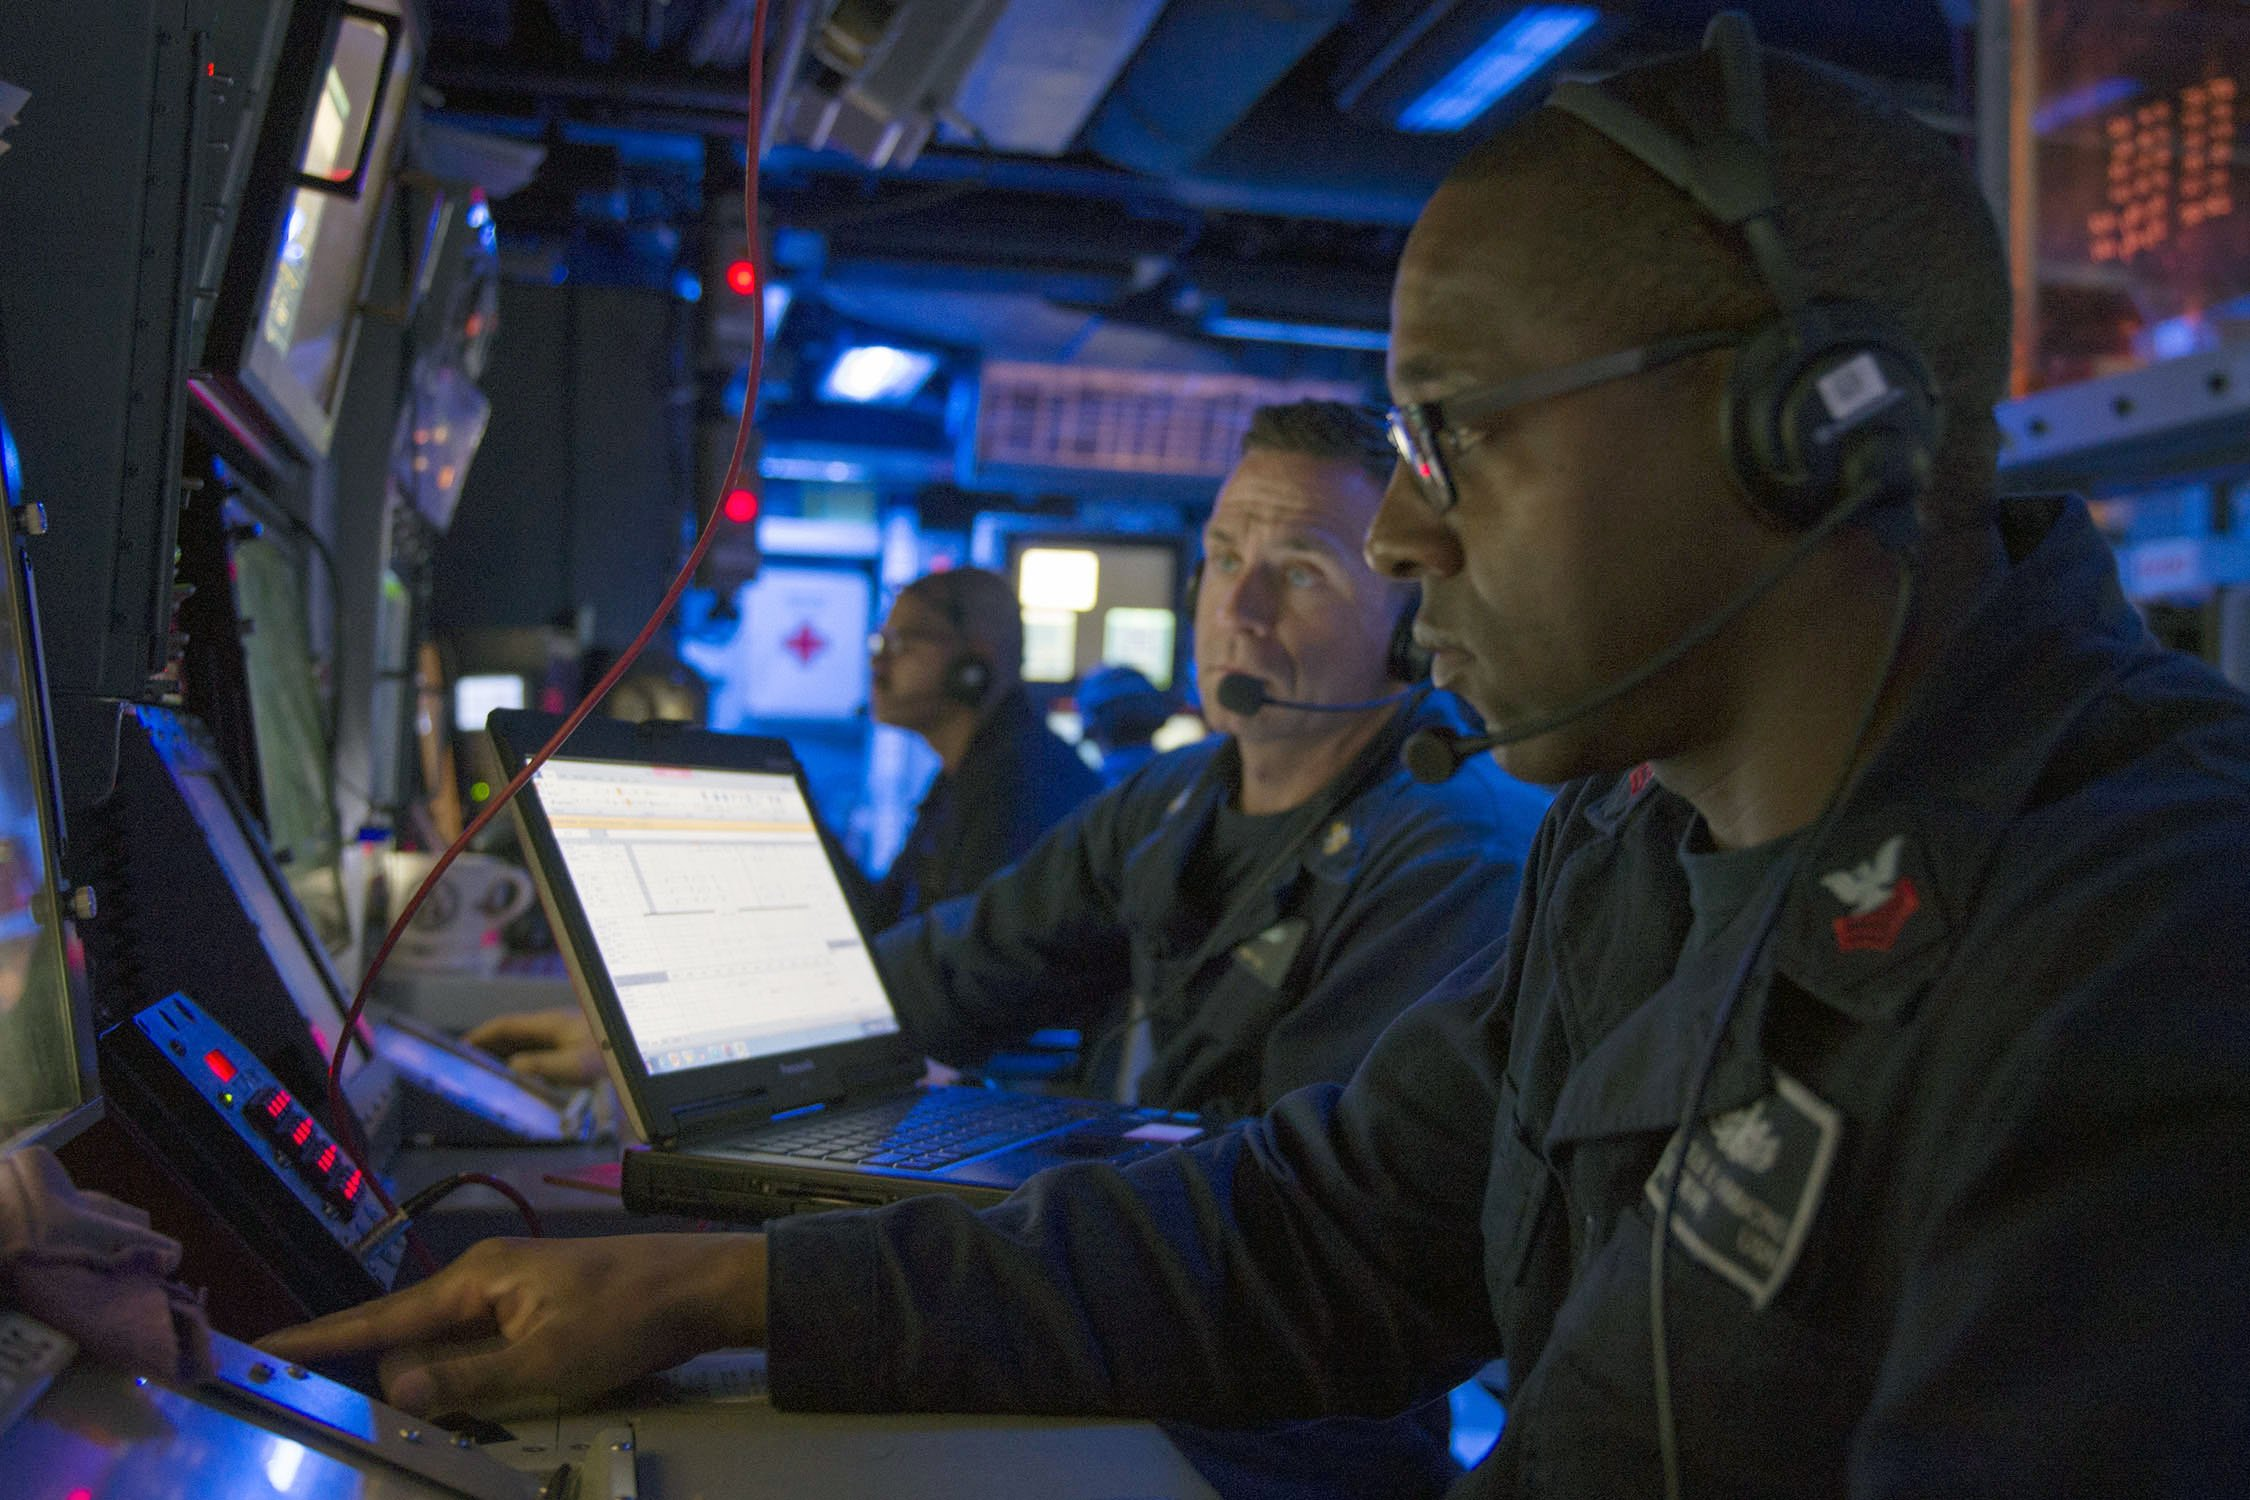 SOUTH PACIFIC (July 9, 2017) Operations Specialist 1st Class Charles Hammond, from Kansas City, Missouri, monitors tracks aboard Arleigh Burke-class guided-missile destroyer USS Sterett (DDG 104) during an air defense exercise comprised of Sterett, amphibious assault ship USS Bonhomme Richard (LHD 6), amphibious transport dock USS Green Bay (LPD 20), amphibious dock landing ship USS Ashland (LSD 48), Royal Australian Navy frigate helicopter HMAS Ballarat (FFH 155), Royal Australian Navy guided missile frigate HMAS Darwin (FFG 04), and Royal Australian Navy frigate helicopter HMAS Toowoomba (FFH 156) as part of Talisman Saber 17. Sterett, part of a combined U.S.-Australia-New Zealand expeditionary strike group (ESG), is undergoing a series of scenarios that will increase proficiencies defending the ESG against blue-water threats so amphibious forces can launch Marine forces ashore in the littorals. Talisman Saber is a biennial U.S.-Australia bilateral exercise held off the coast of Australia meant to achieve interoperability and strengthen the U.S.-Australia alliance. (U.S. Navy photo by Mass Communication Specialist 1st Class Byron C. Linder/Released)170709-N-ZW825-895